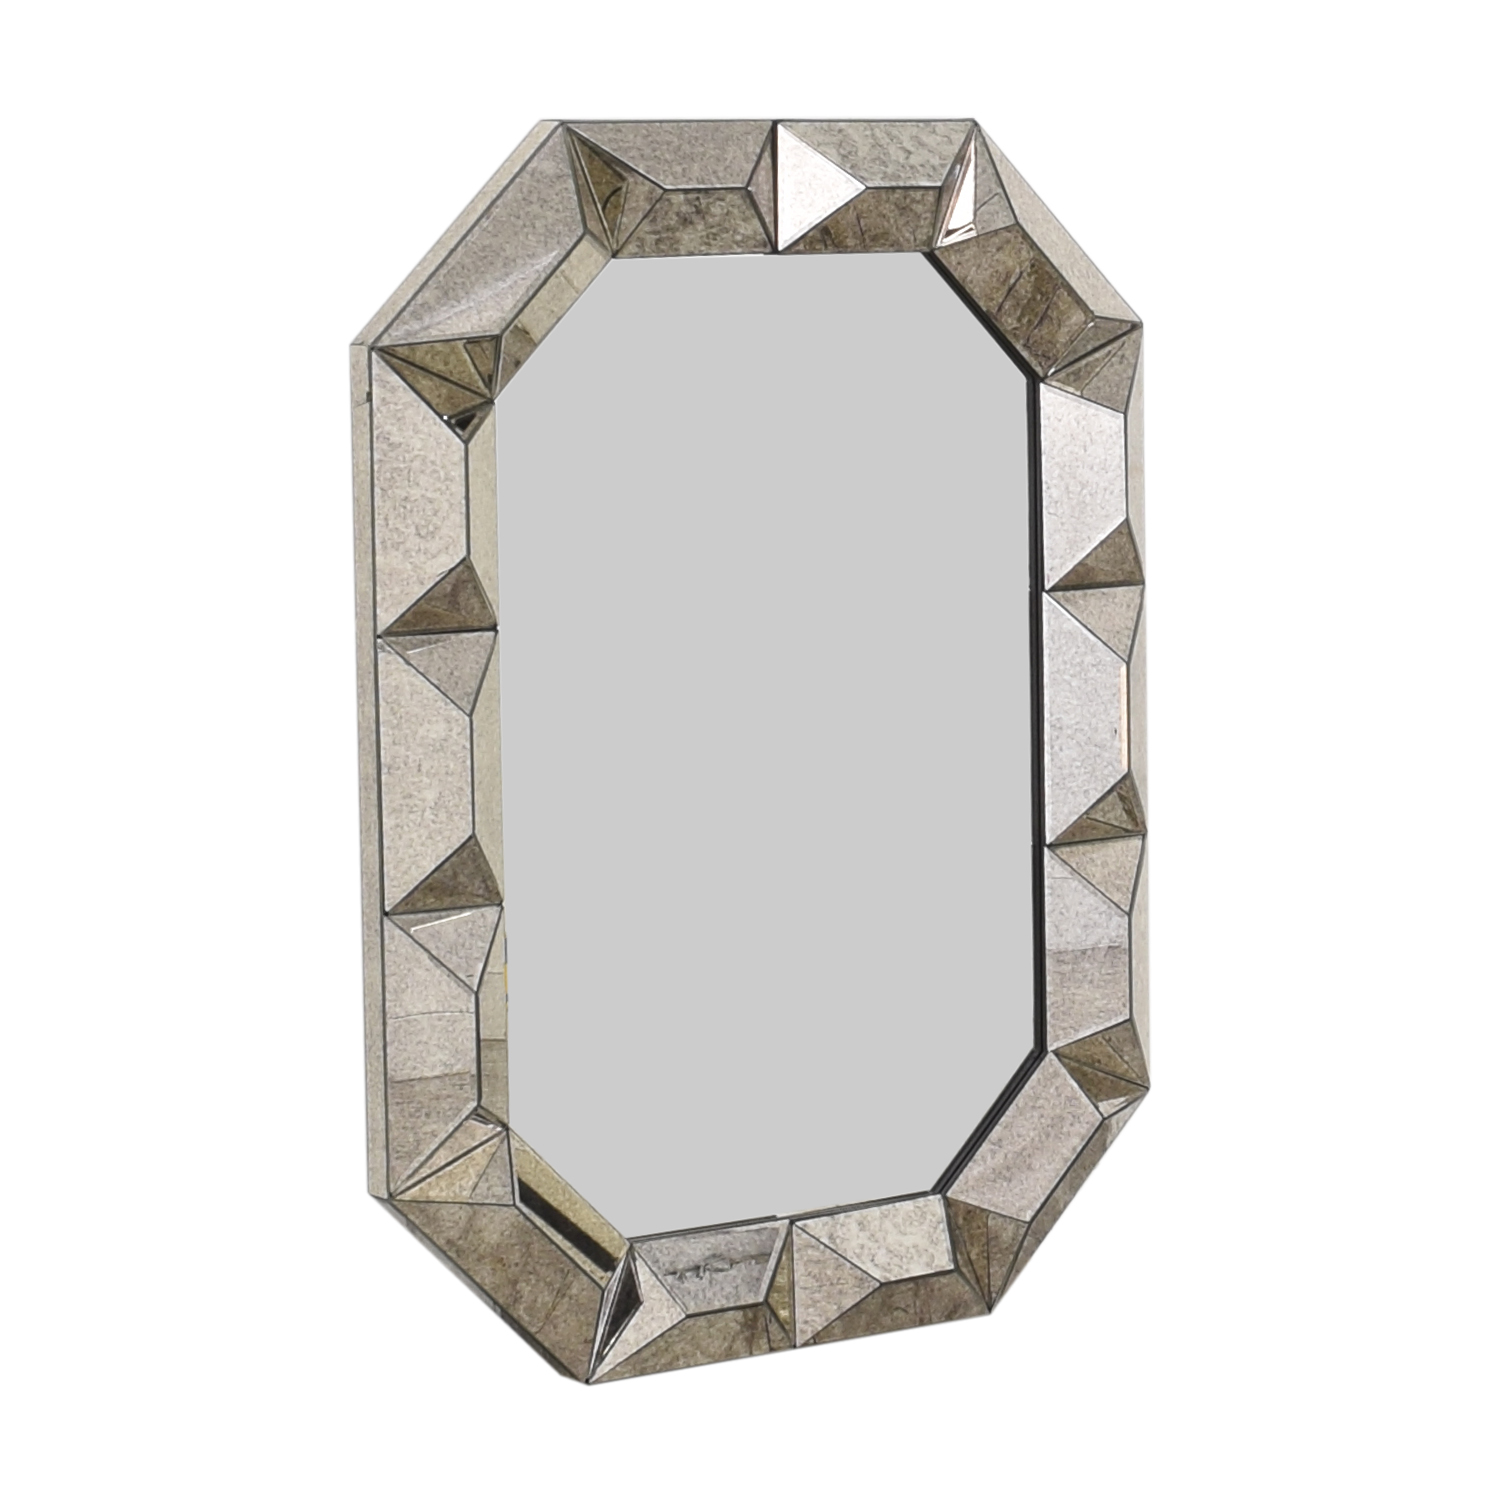 Bungalow 5 Bungalow 5 Romano Wall Mirror dimensions